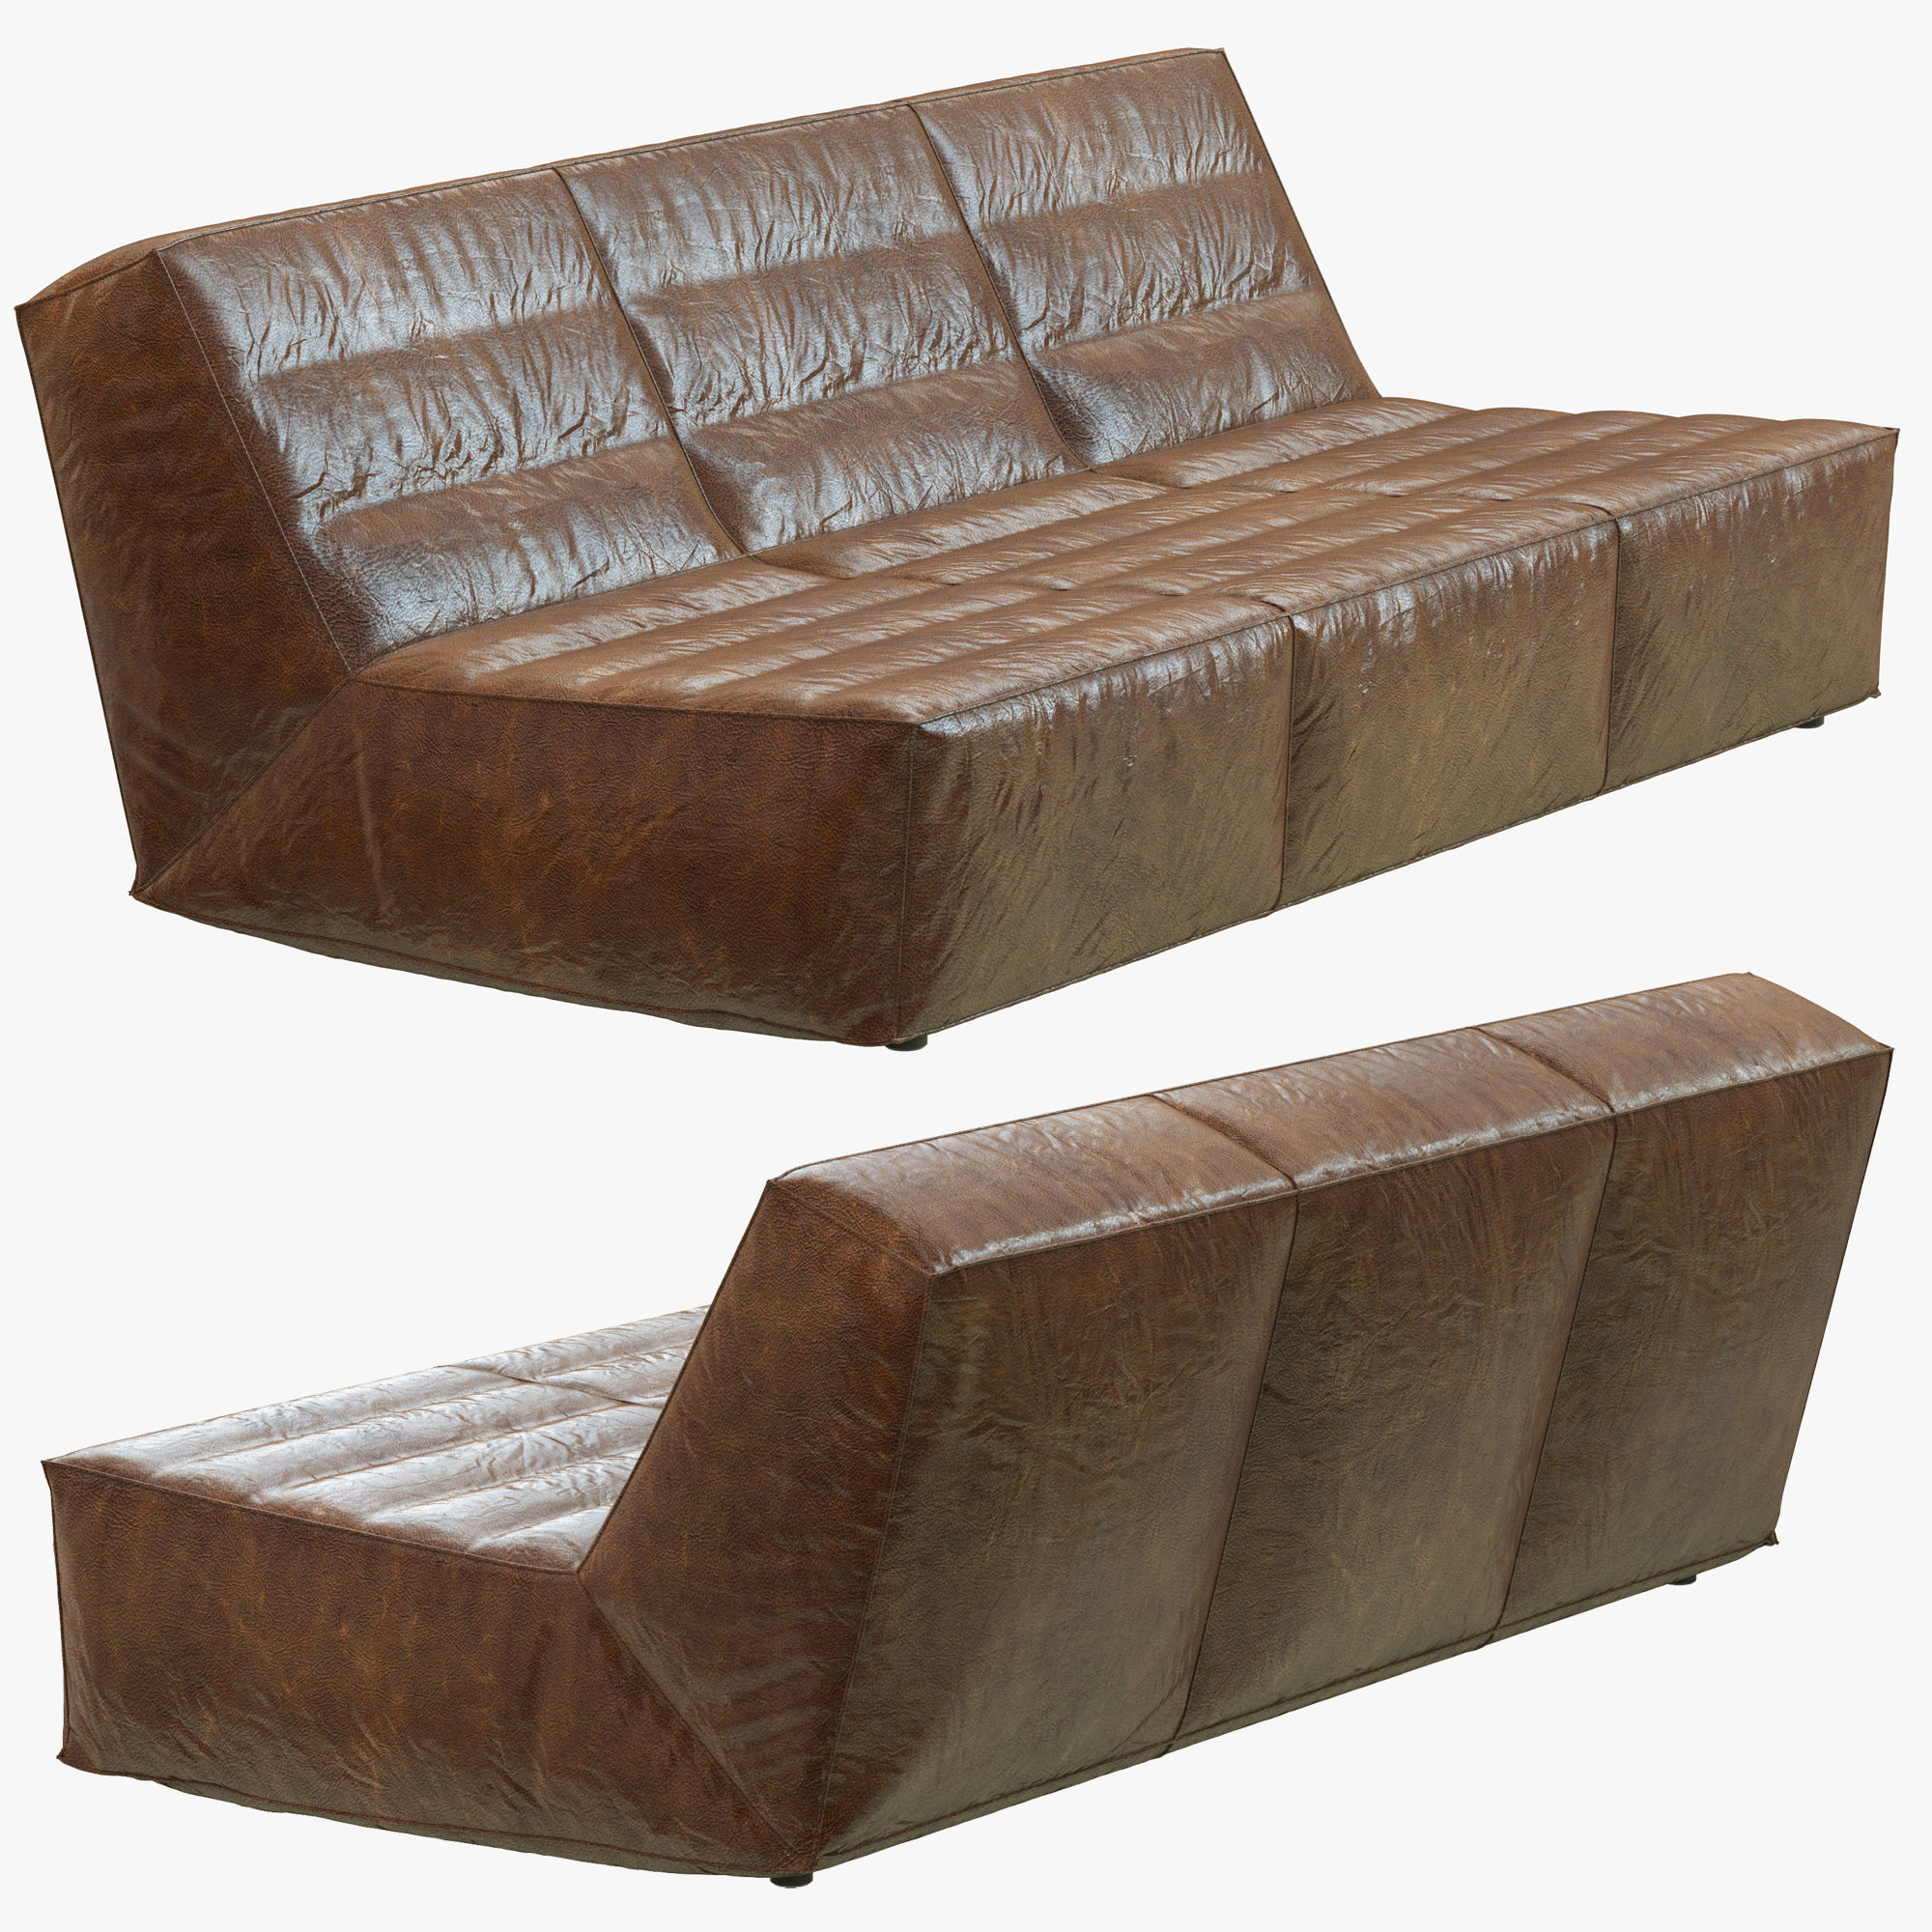 Restoration hardware chelsea leather sofa 3d max for Chelsea leather sofa